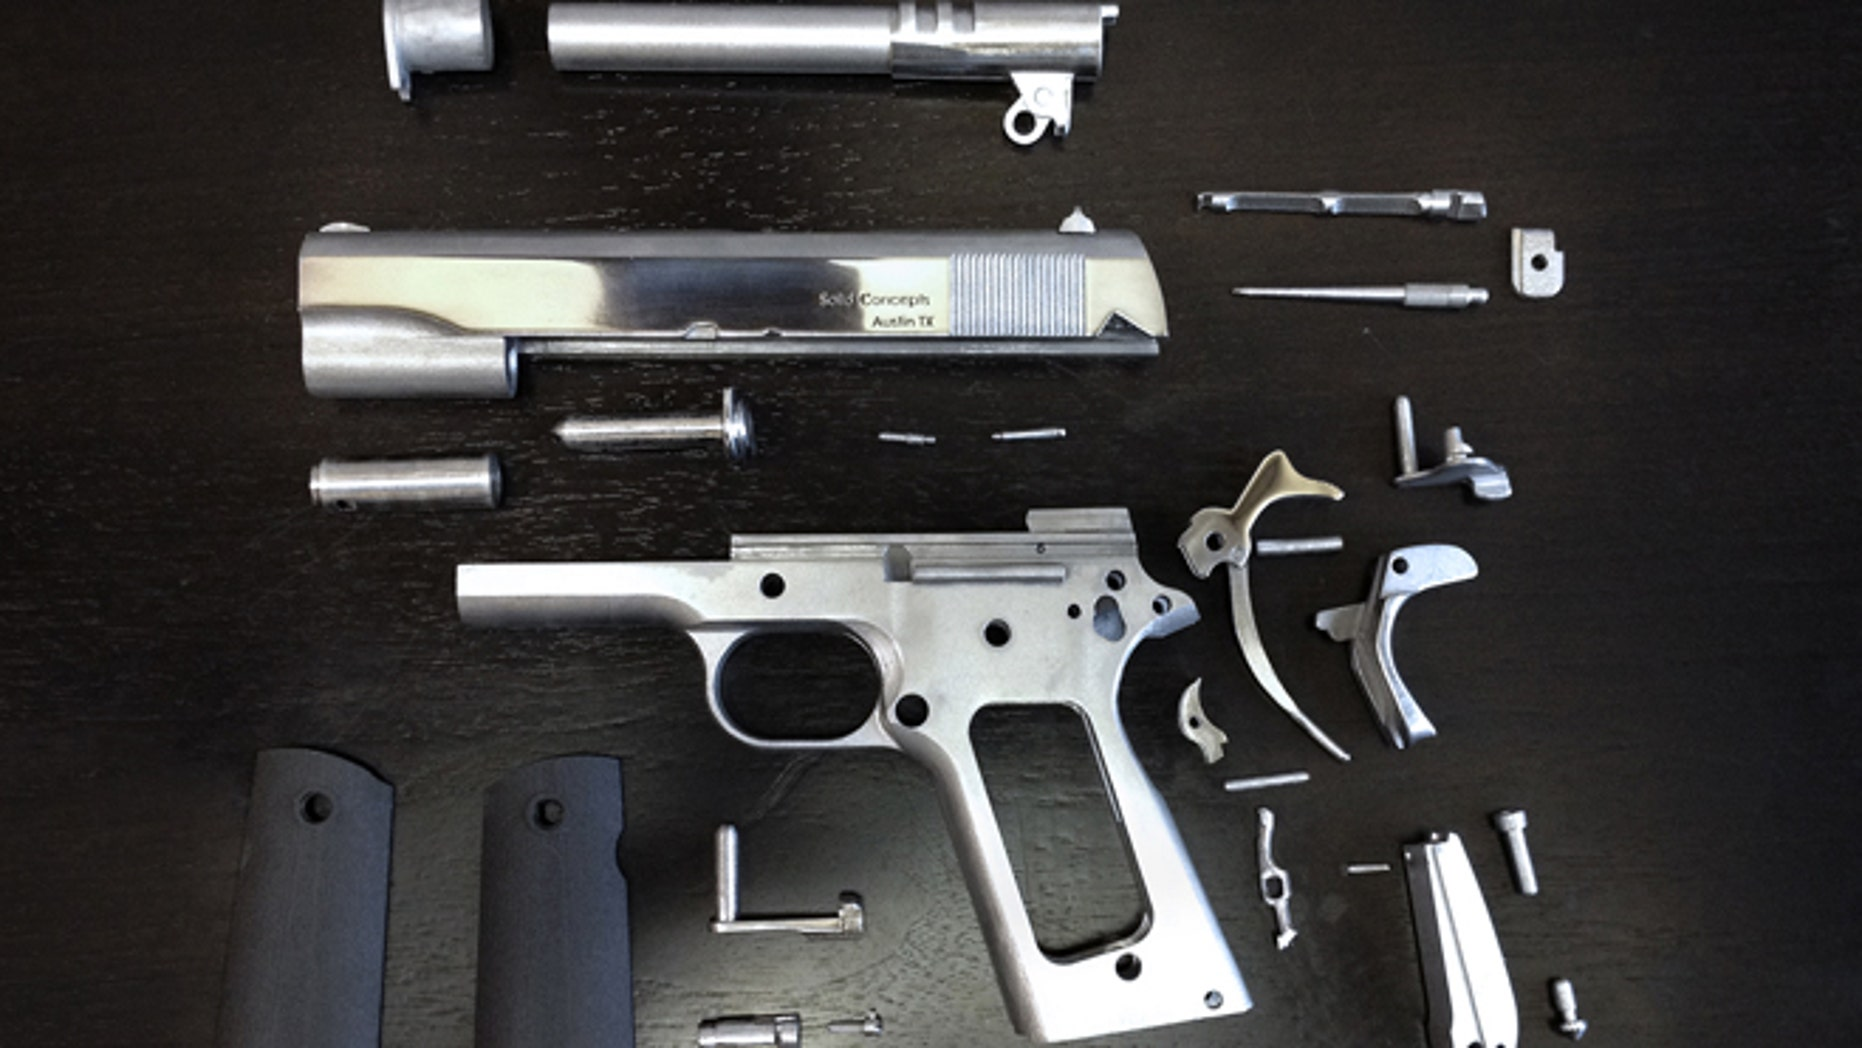 Components for the first ever working 3D Printed metal gun.